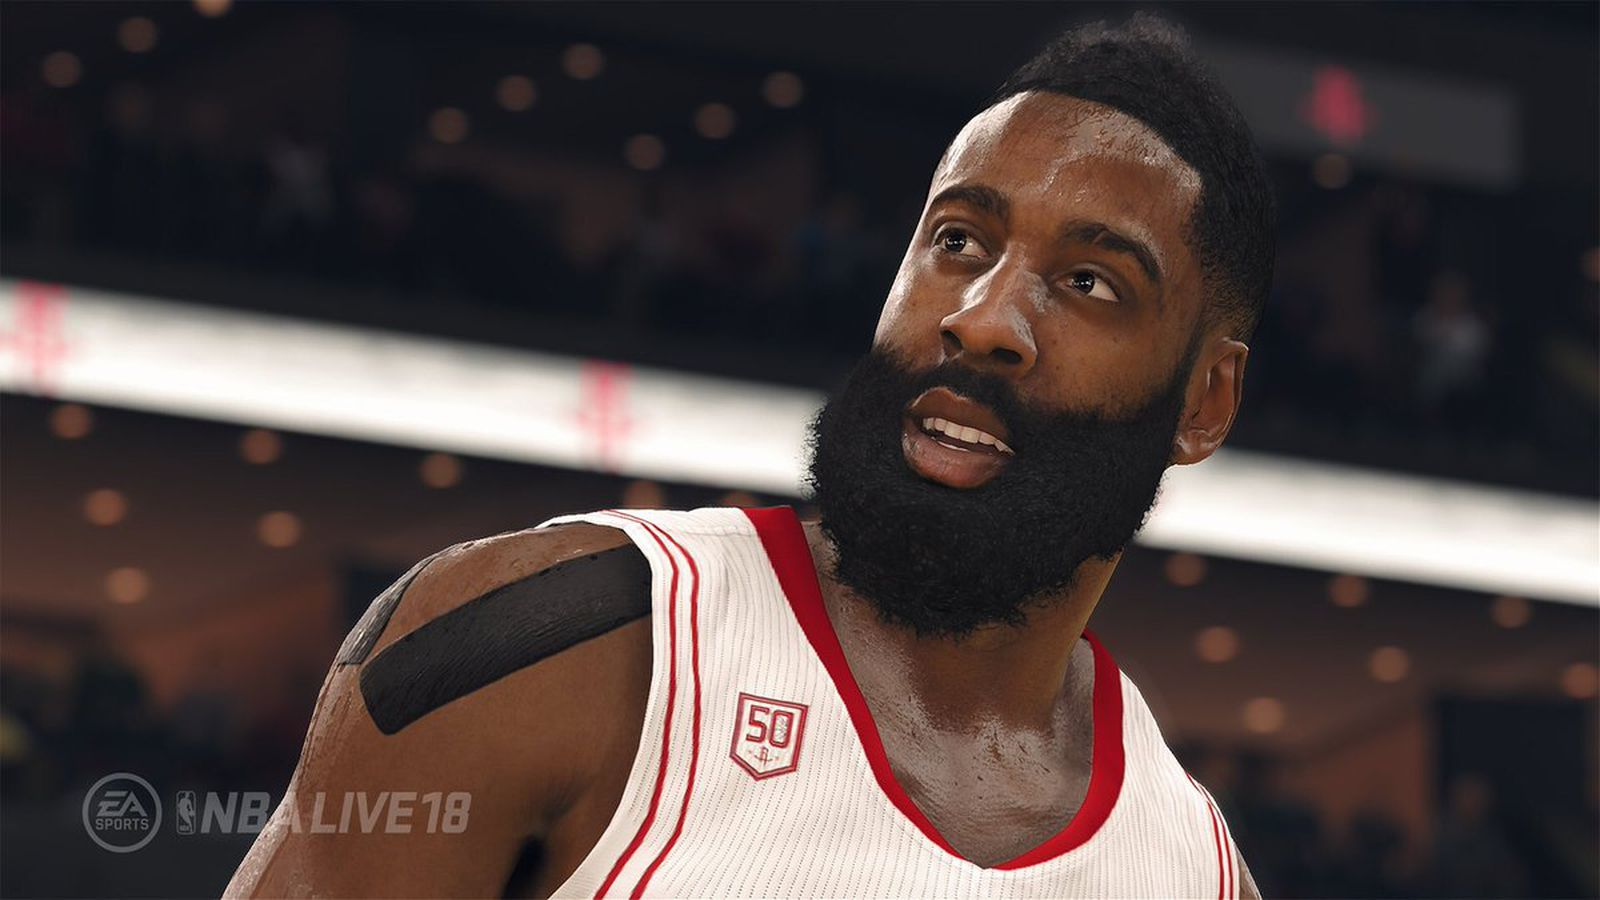 NBA Live 18's demo is out today. Should you play it?